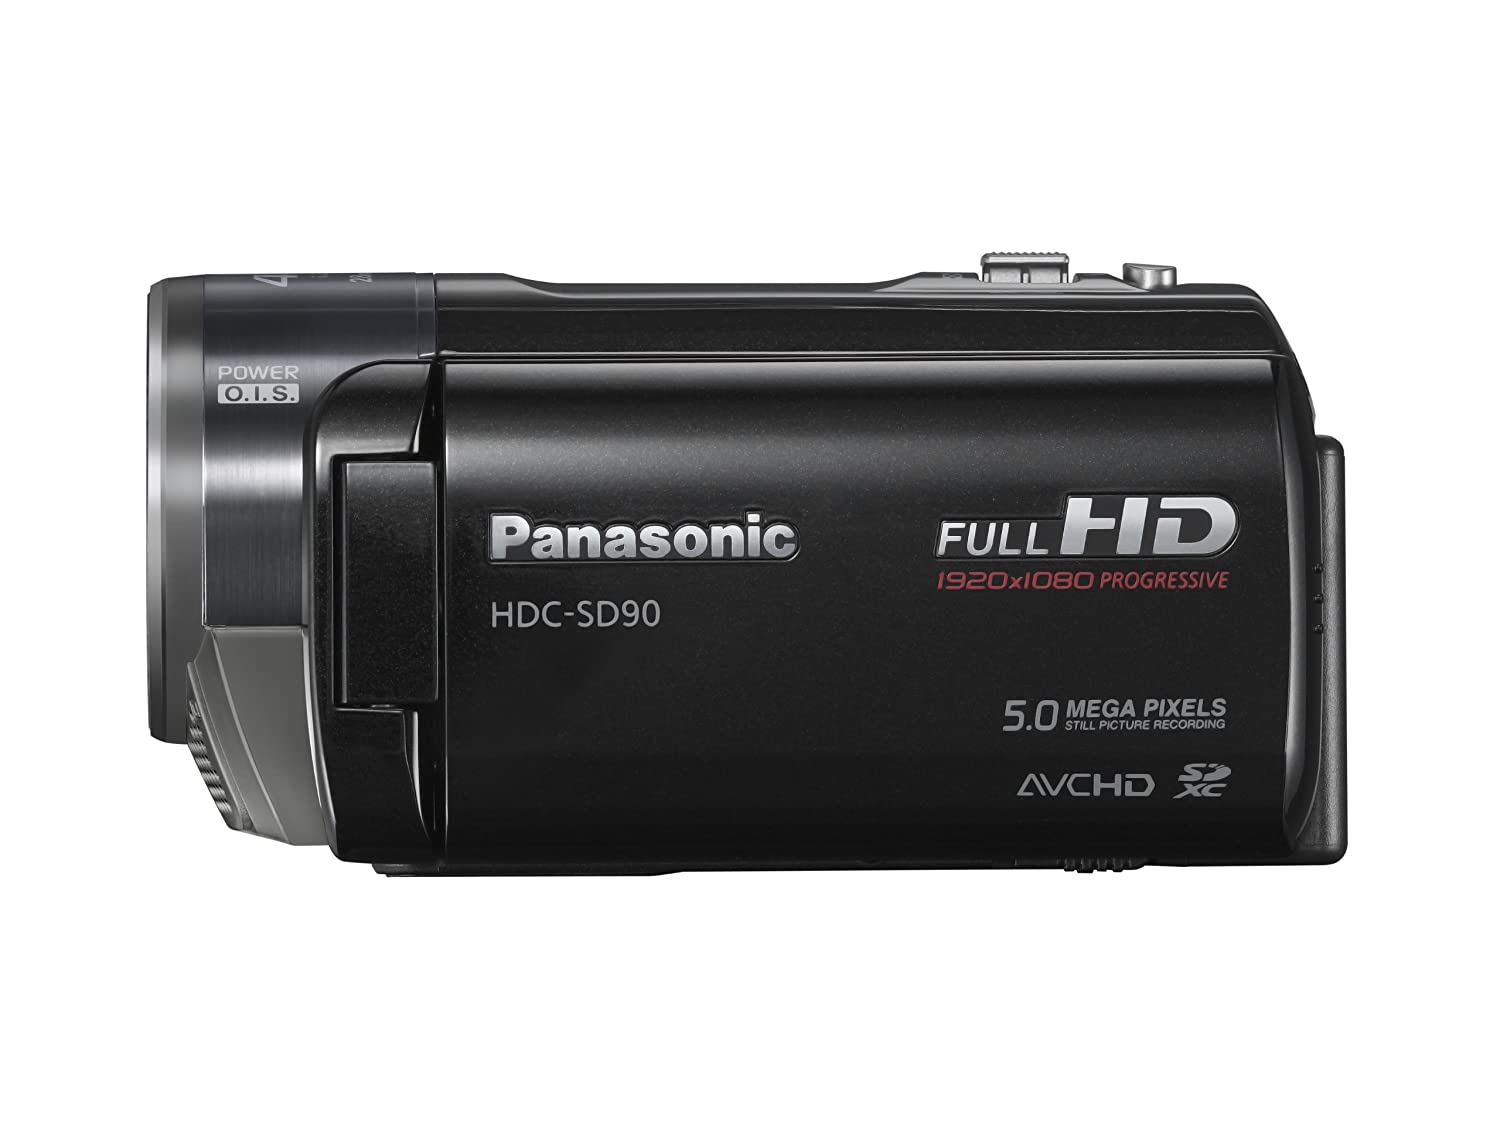 amazon com panasonic hdc sd90k 3d compatible sd memory camcorder rh amazon com Panasonic 3CCD Camcorder Manual Panasonic Camcorder Batteries